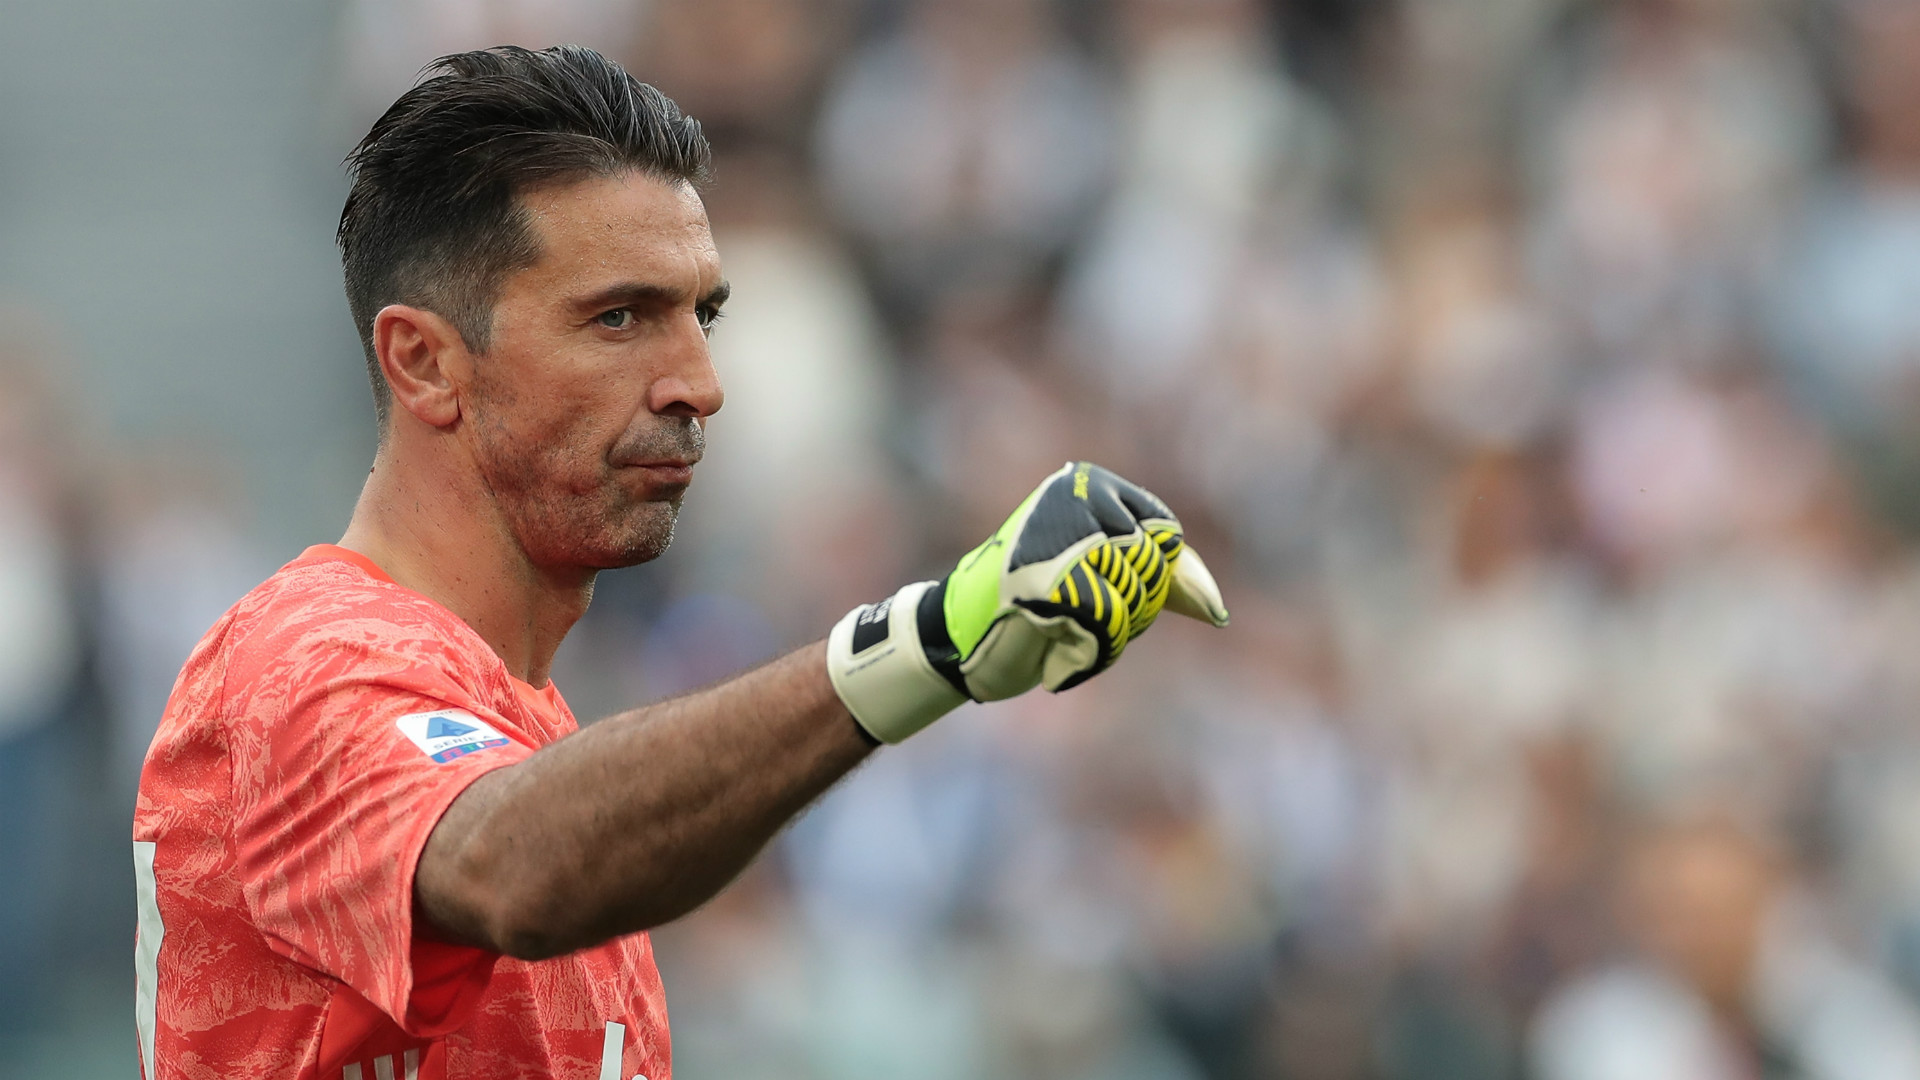 Buffon Makes History With 648th Serie A Appearance As Juventus Goalkeeper Passes Ac Milan Icon Maldini Goal Com